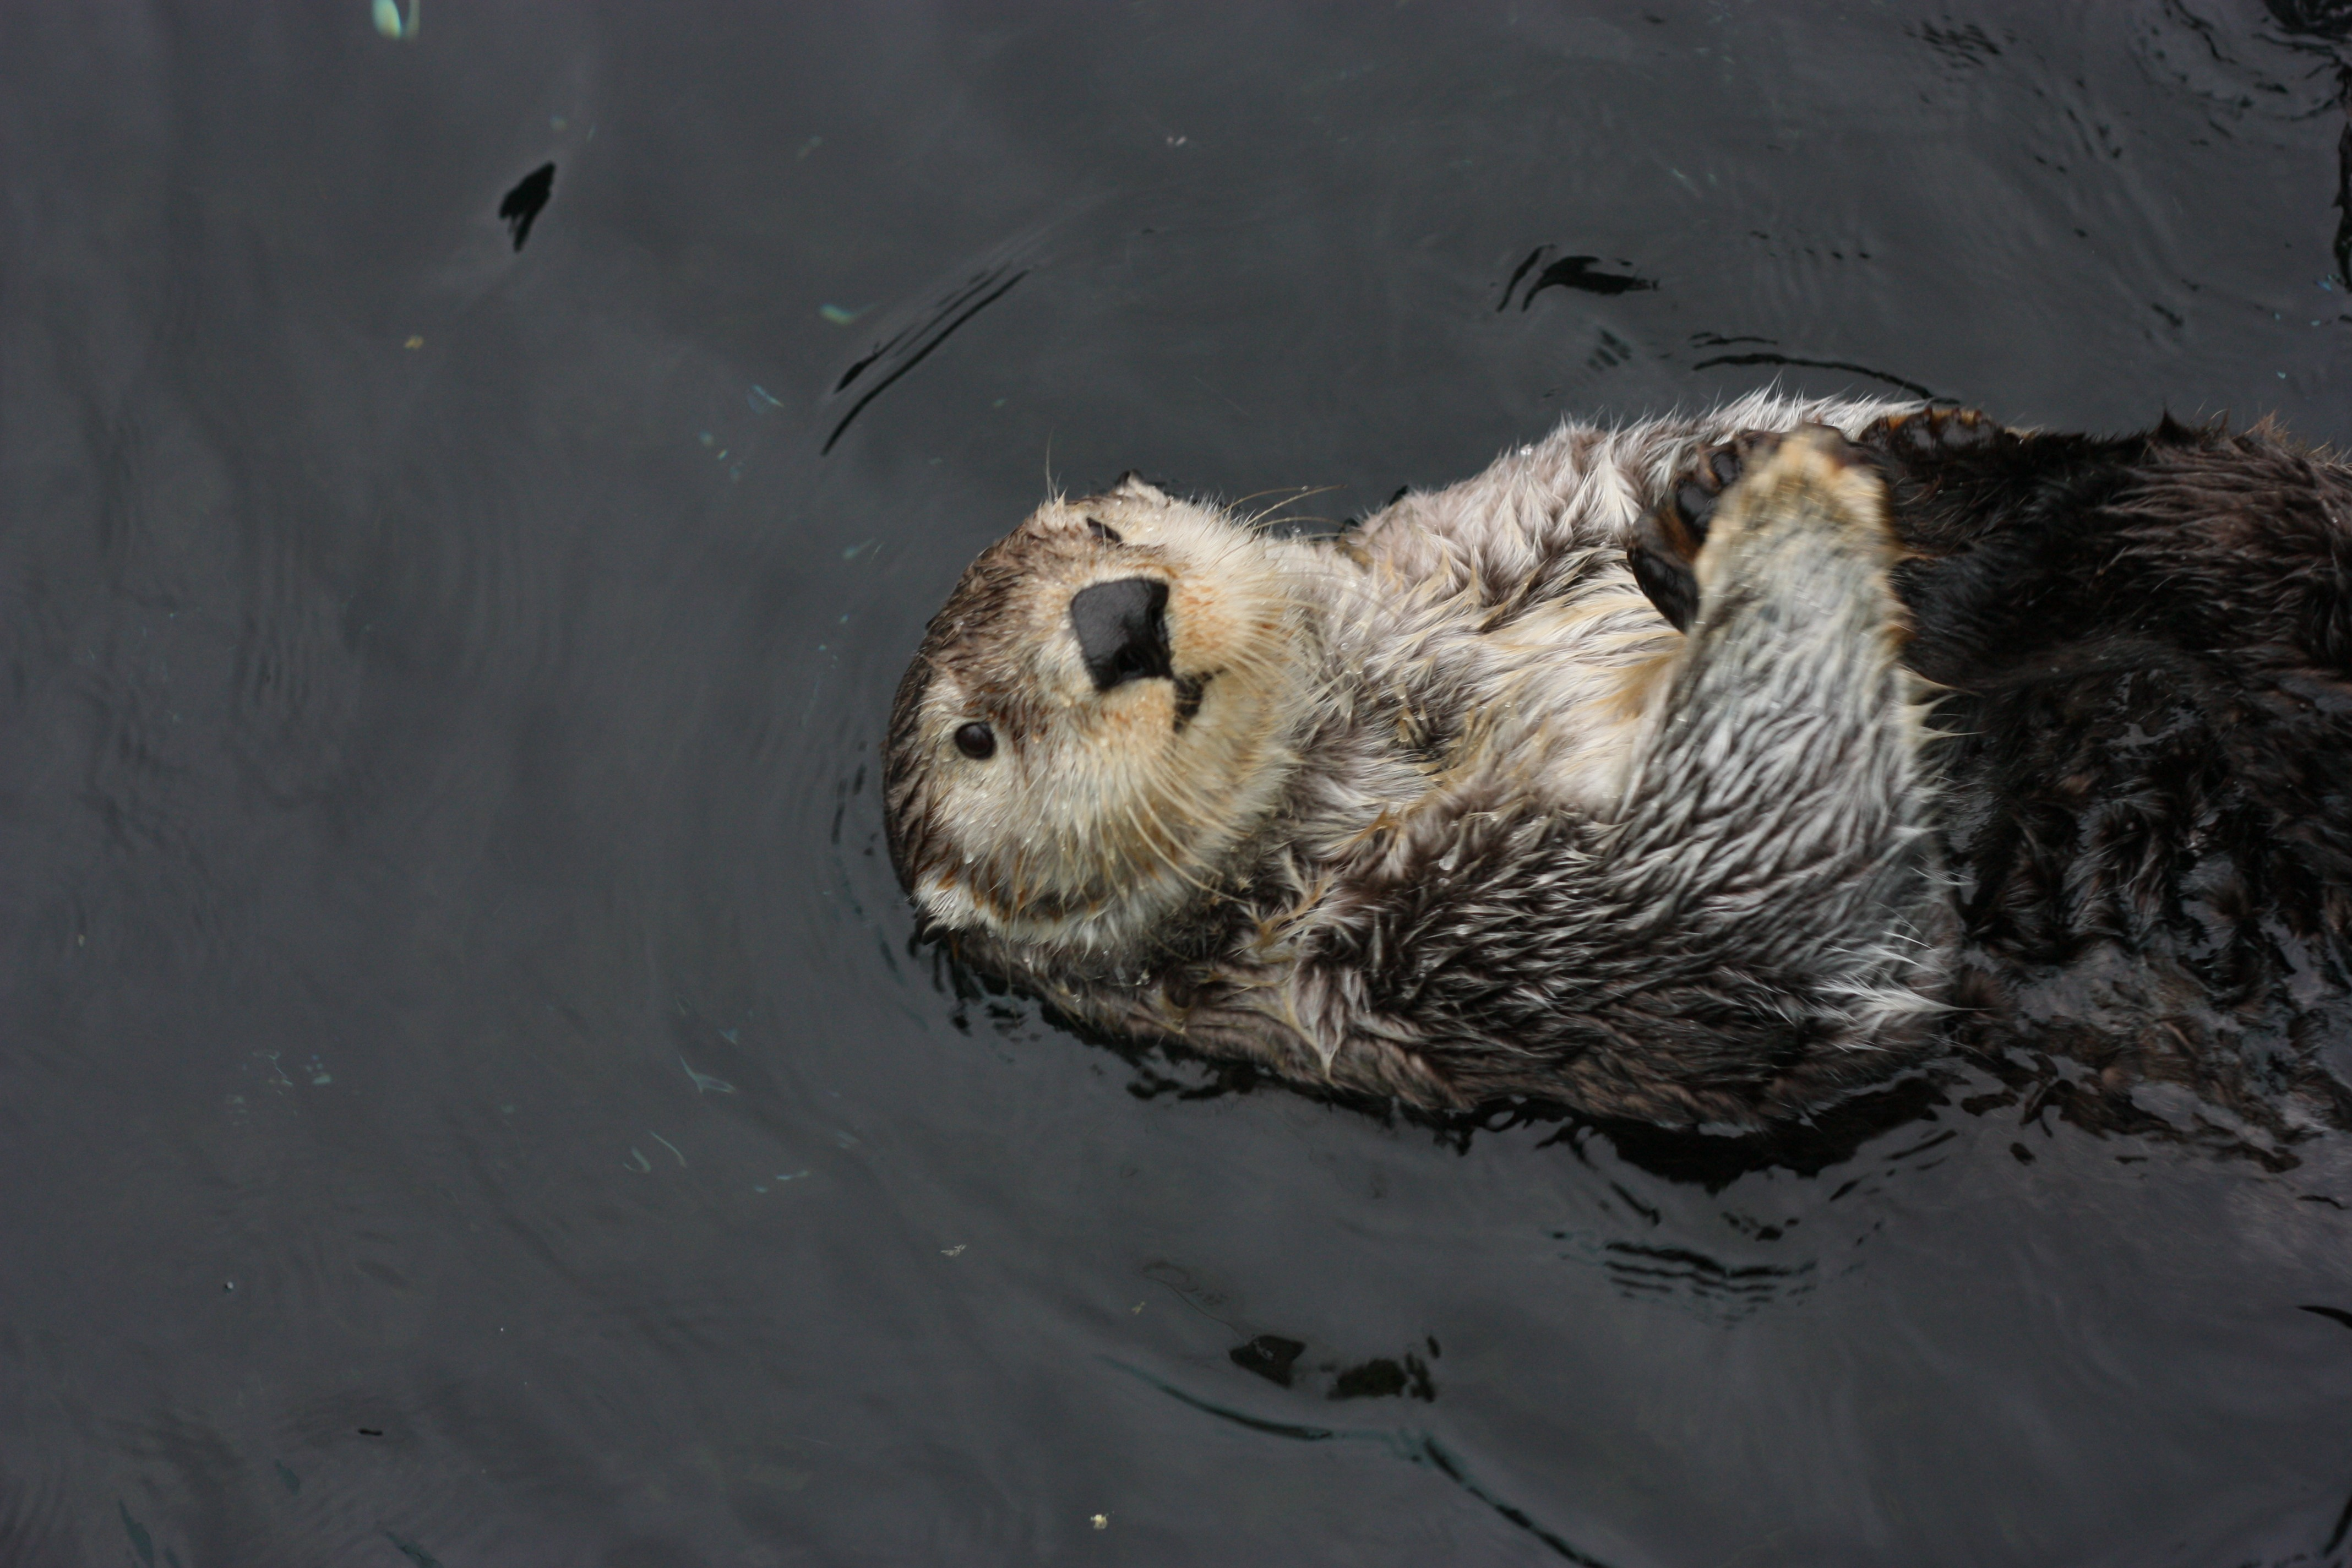 Sea Otter 4k Ultra HD Wallpaper | Background Image | 4272x2848 | ID:656662 - Wallpaper Abyss